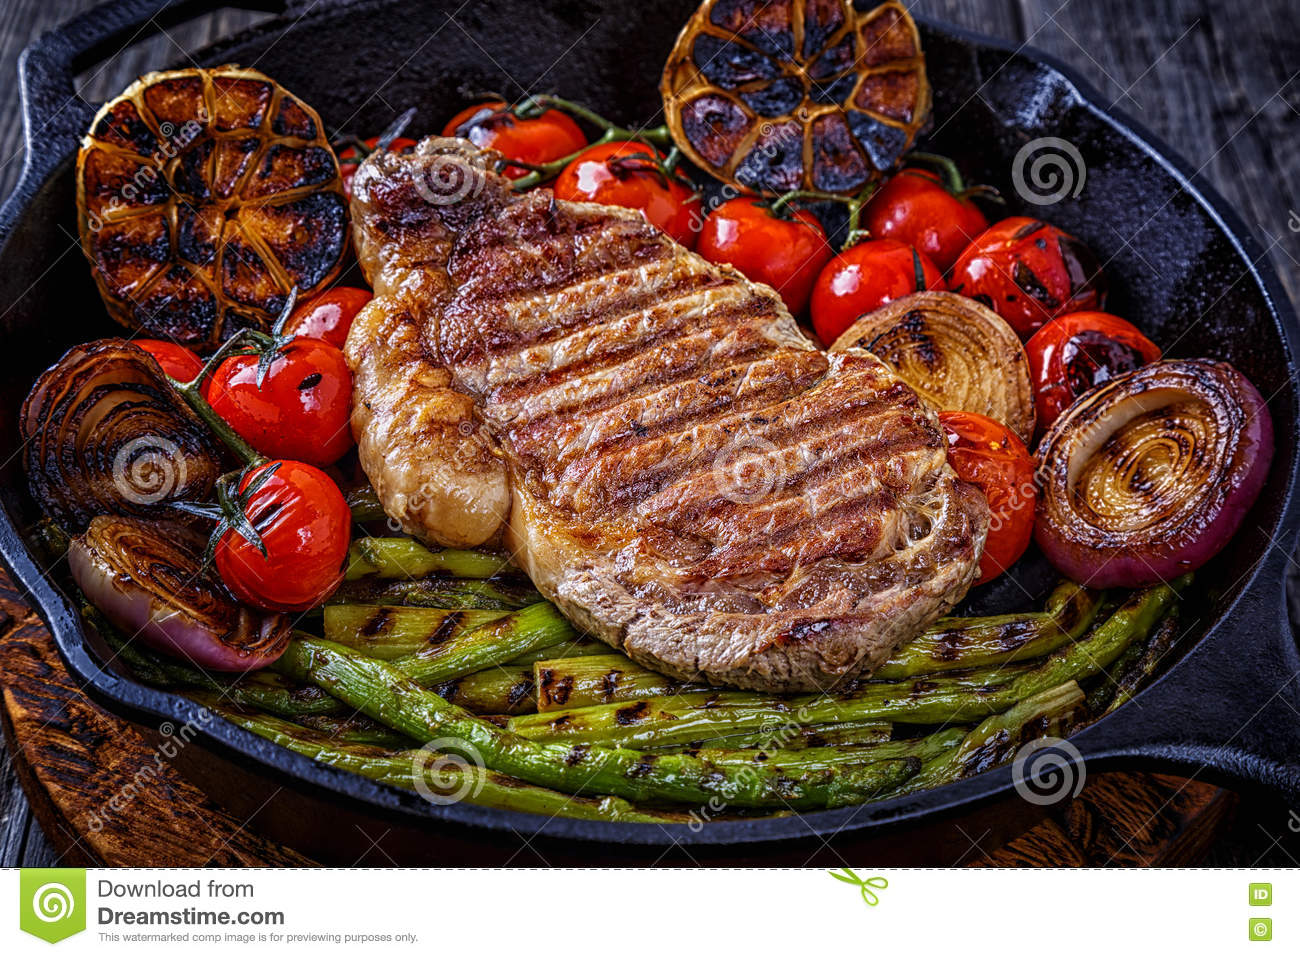 Steak with grilled vegetables in a frying pan.